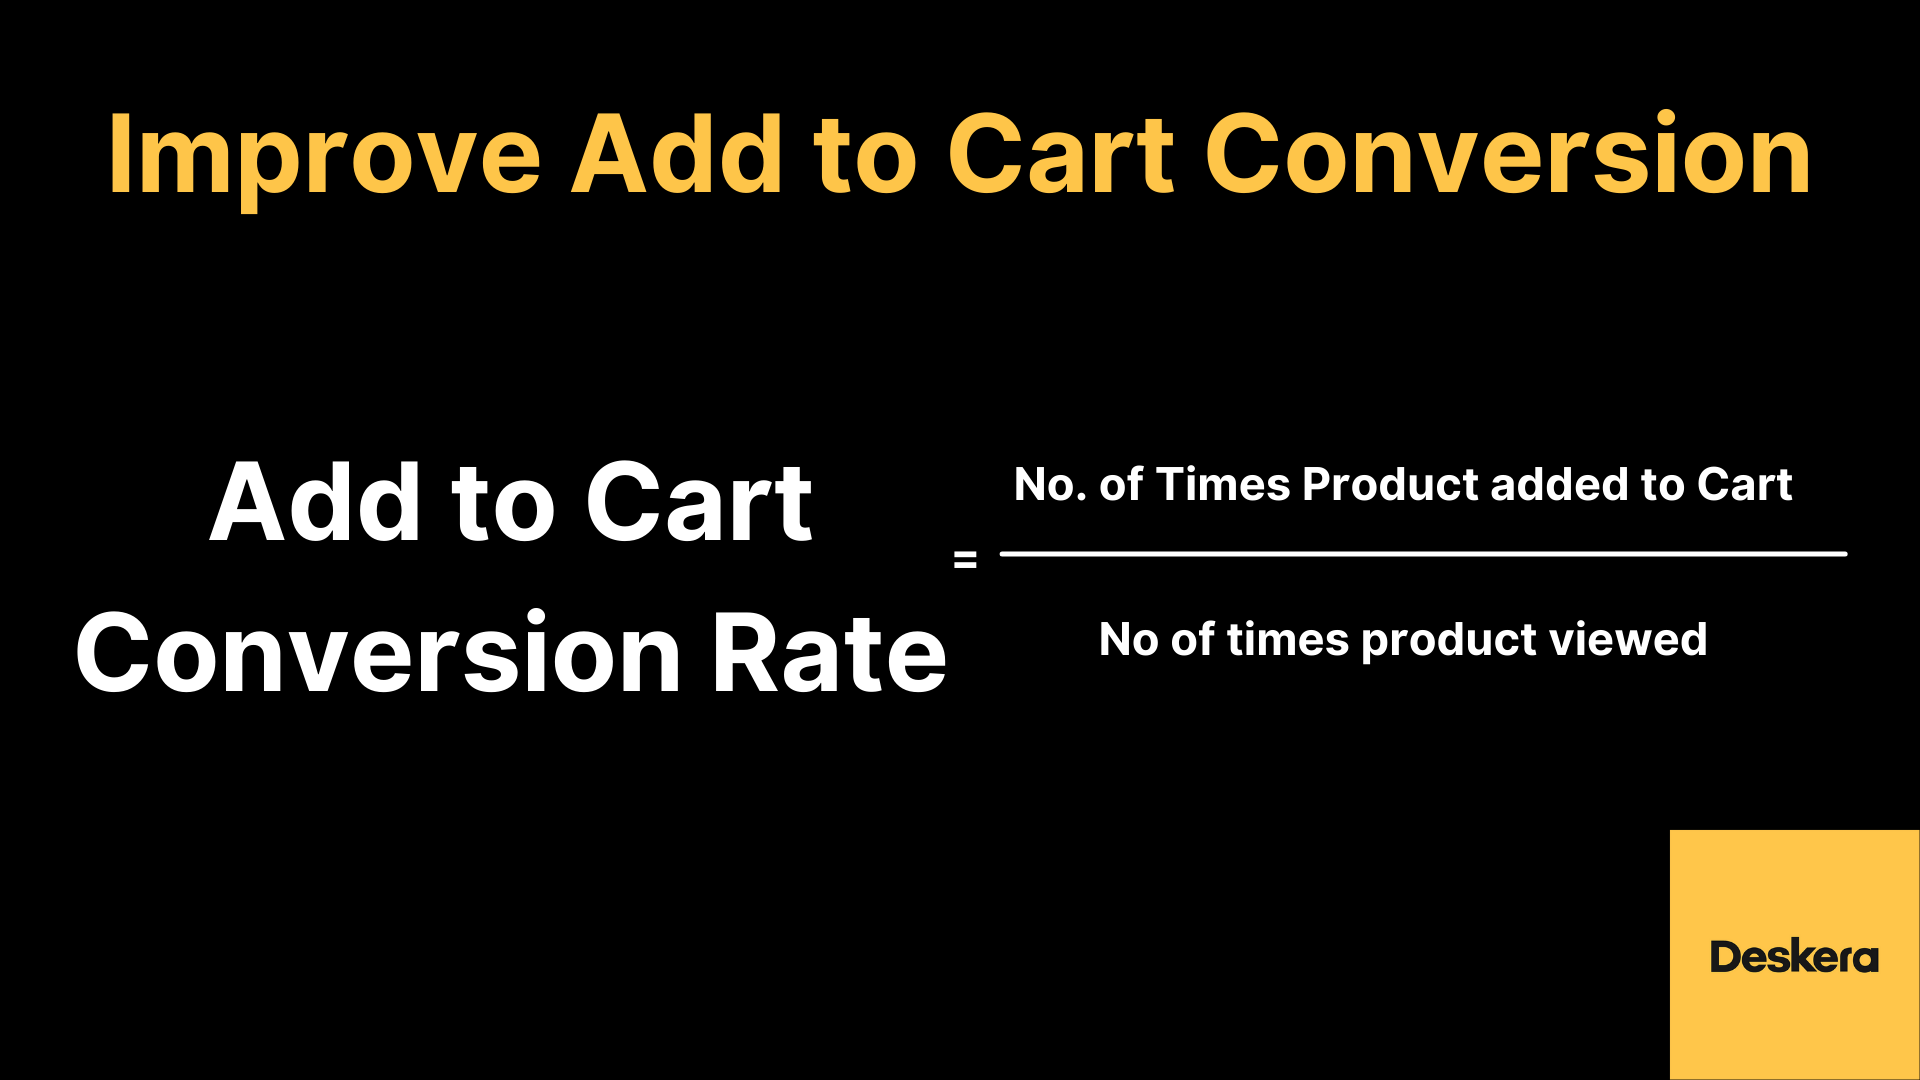 Improve Add to Cart Conversion to Improve Sales of Your eCommerce Business